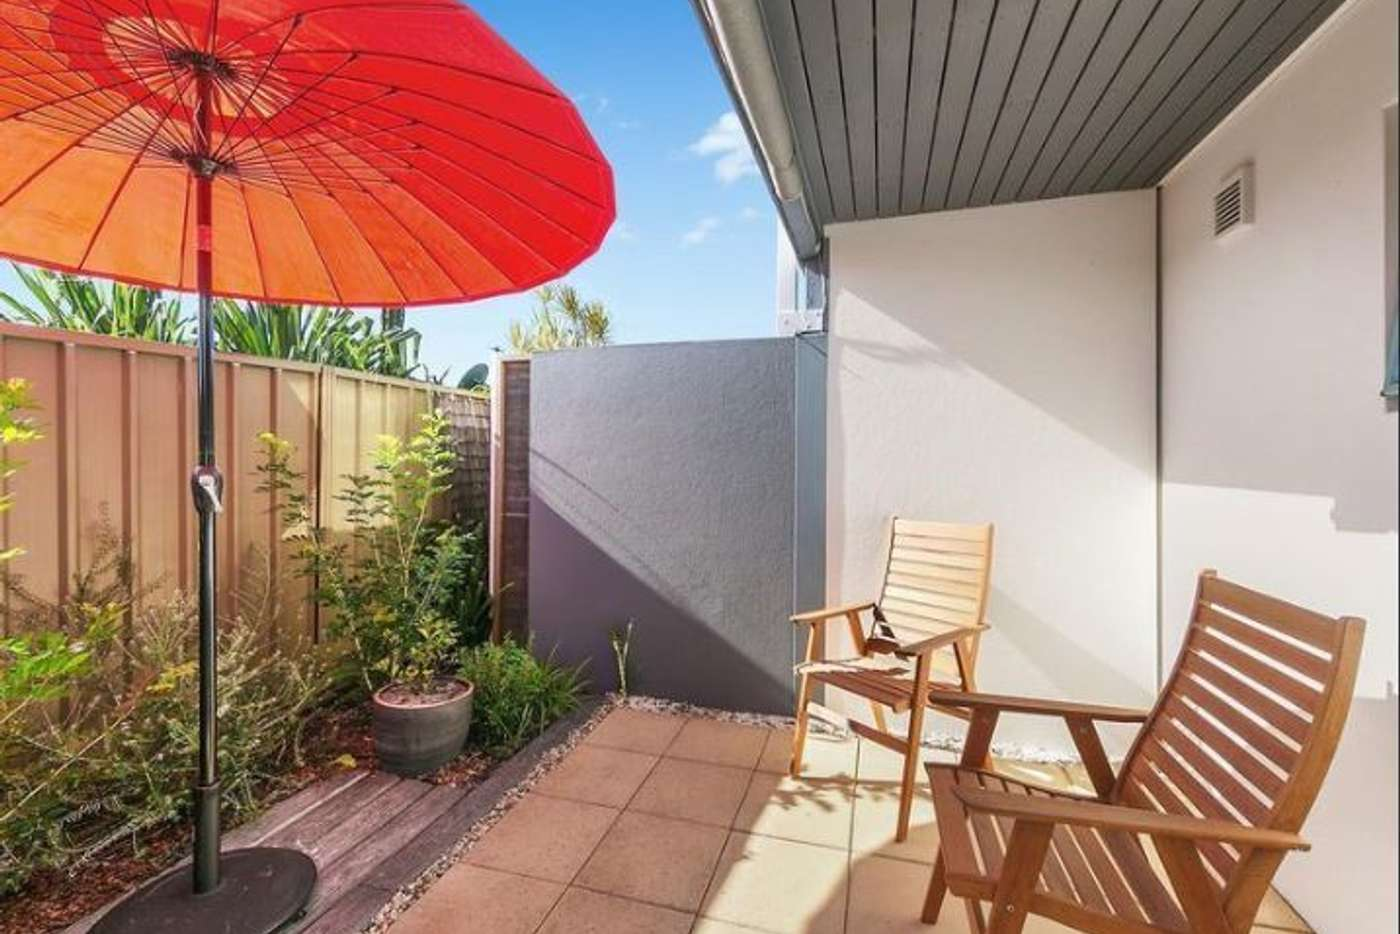 Main view of Homely apartment listing, 4/21-23 Twenty Second Avenue, Sawtell NSW 2452